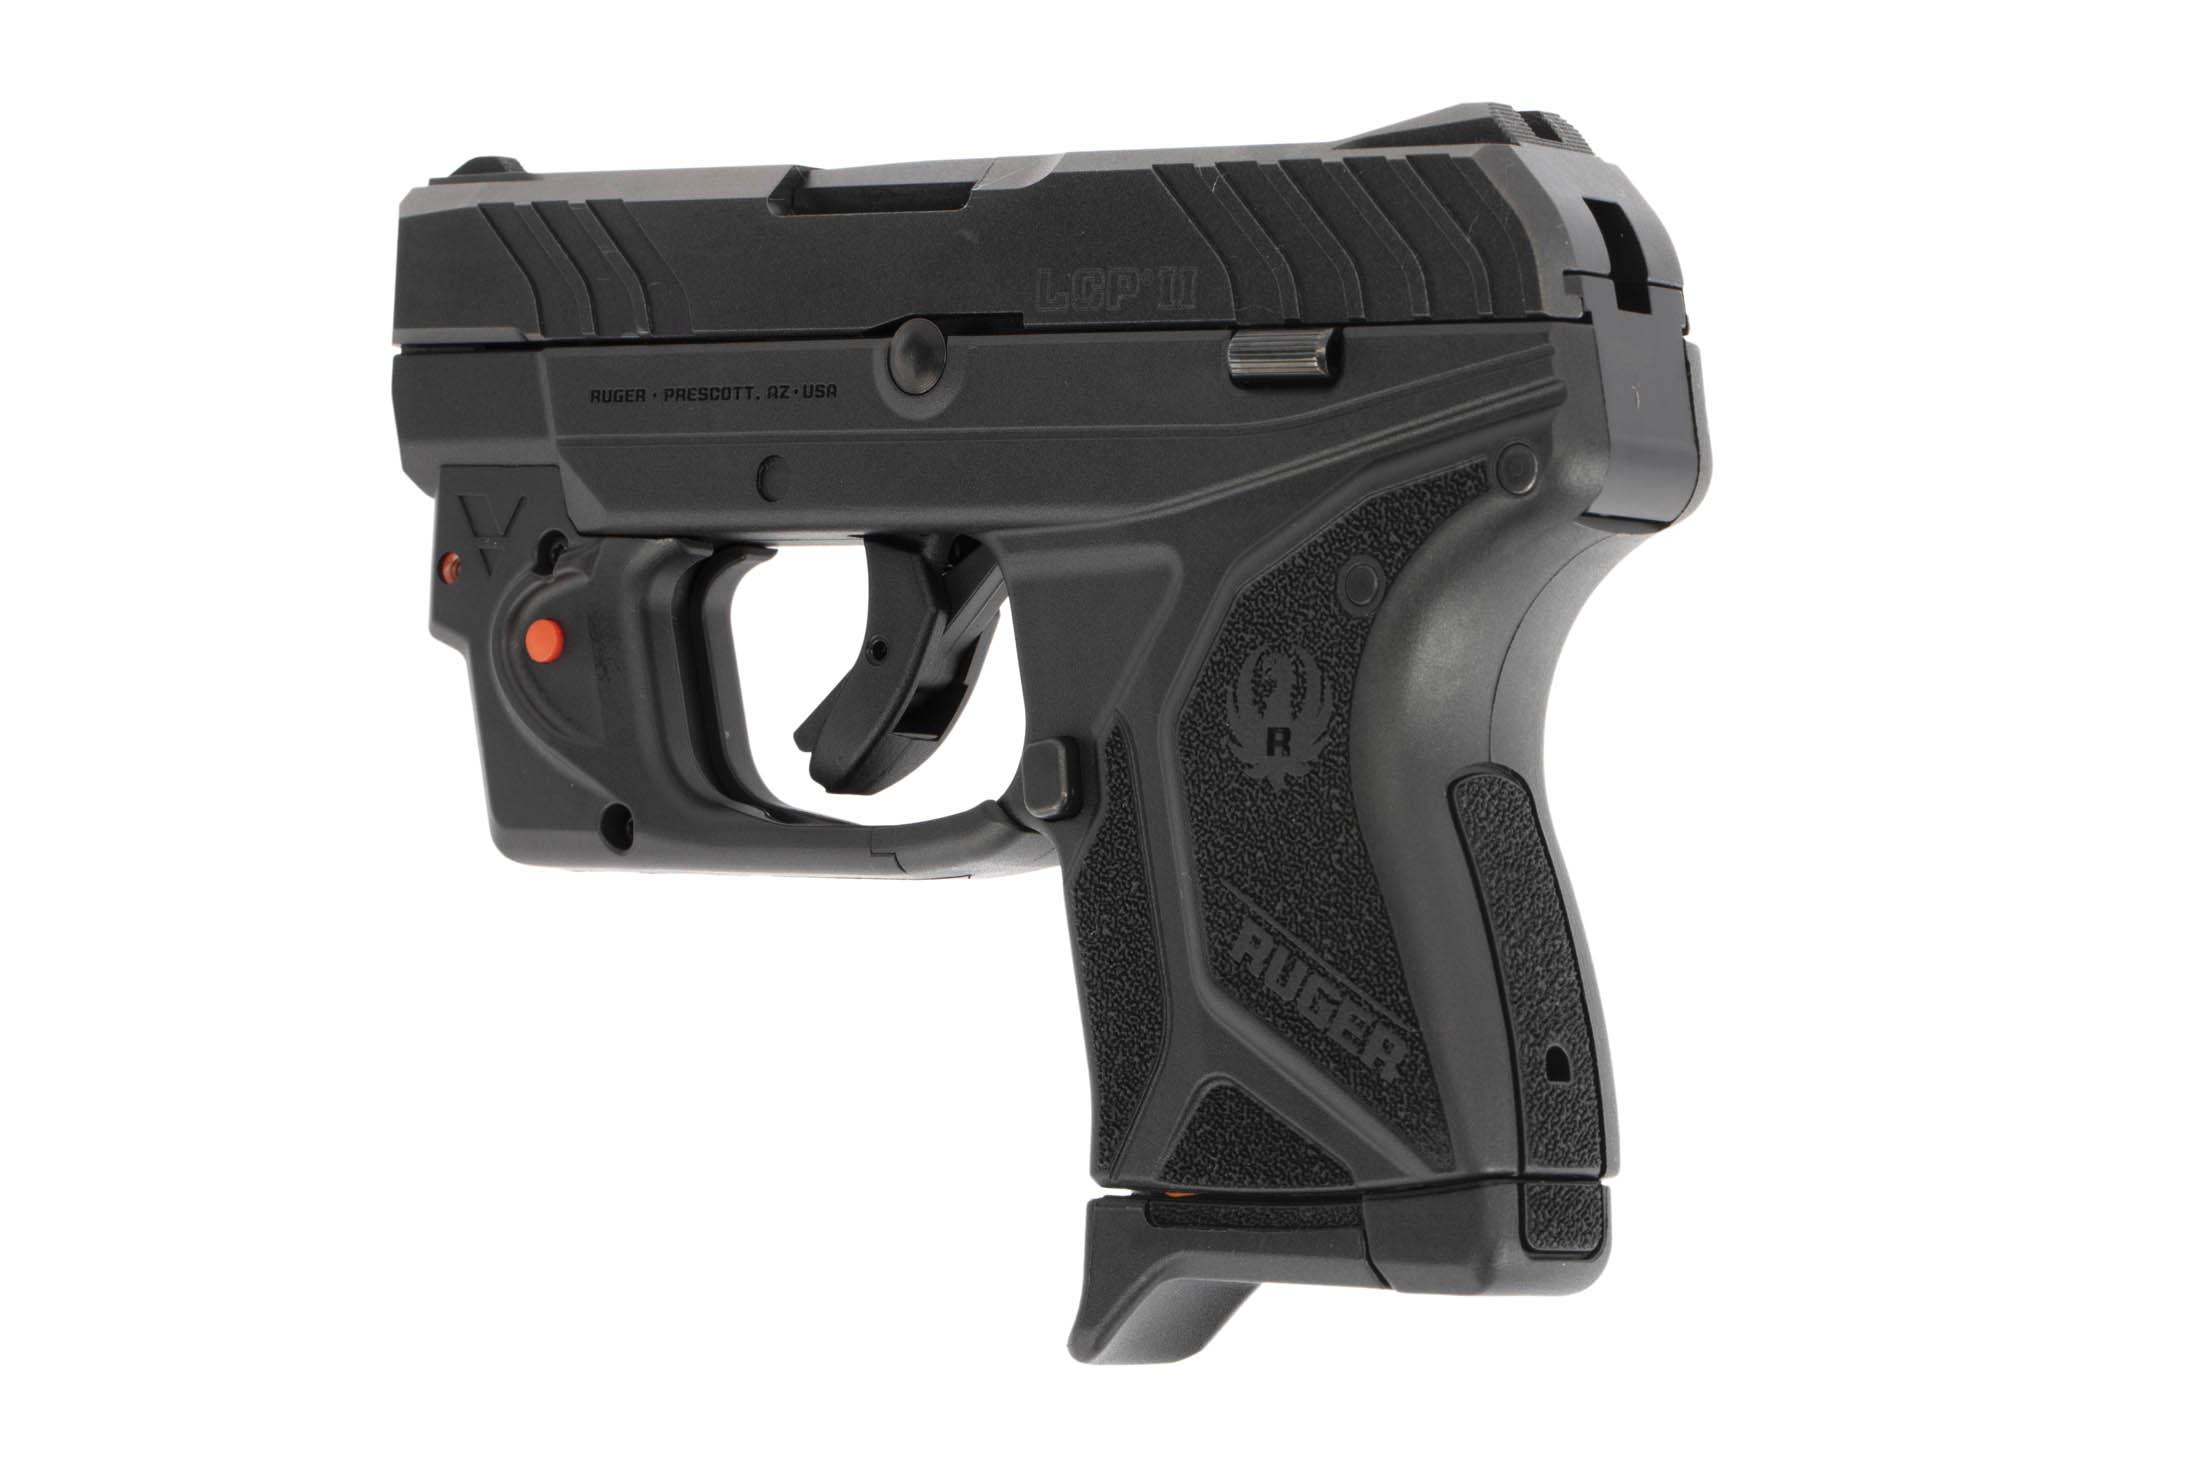 The Ruger LCP II is a hammer fired lightweight pistol